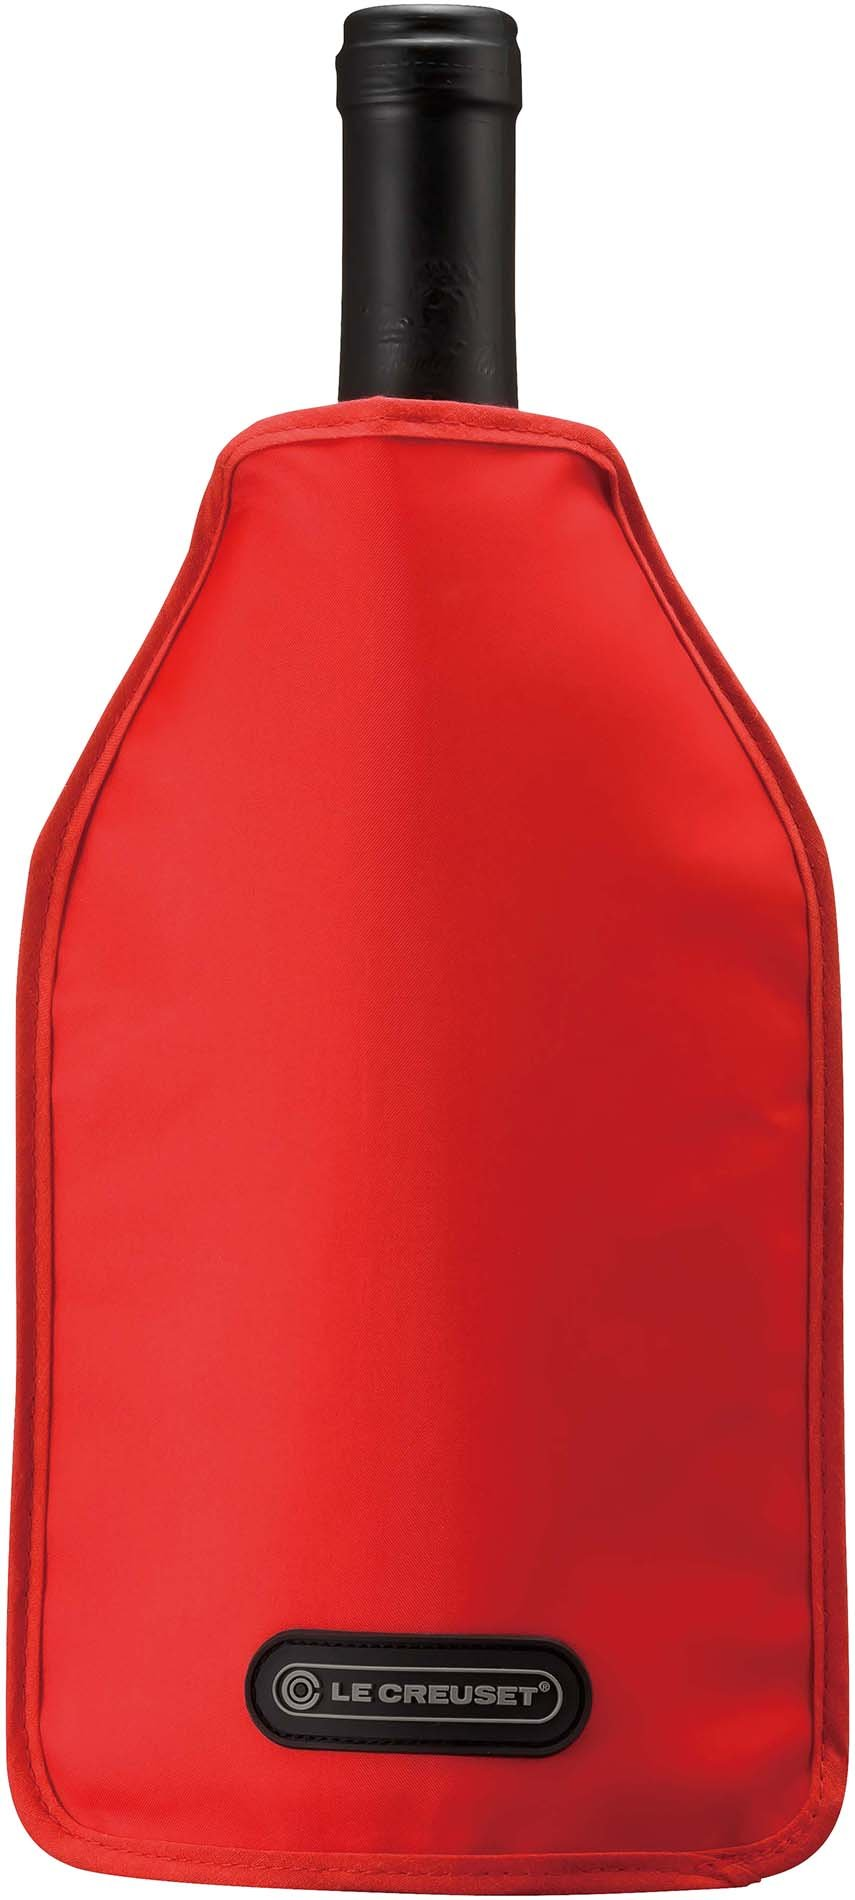 Le Creuset Wine Cooler Sleeve, Cerise (Cherry Red)